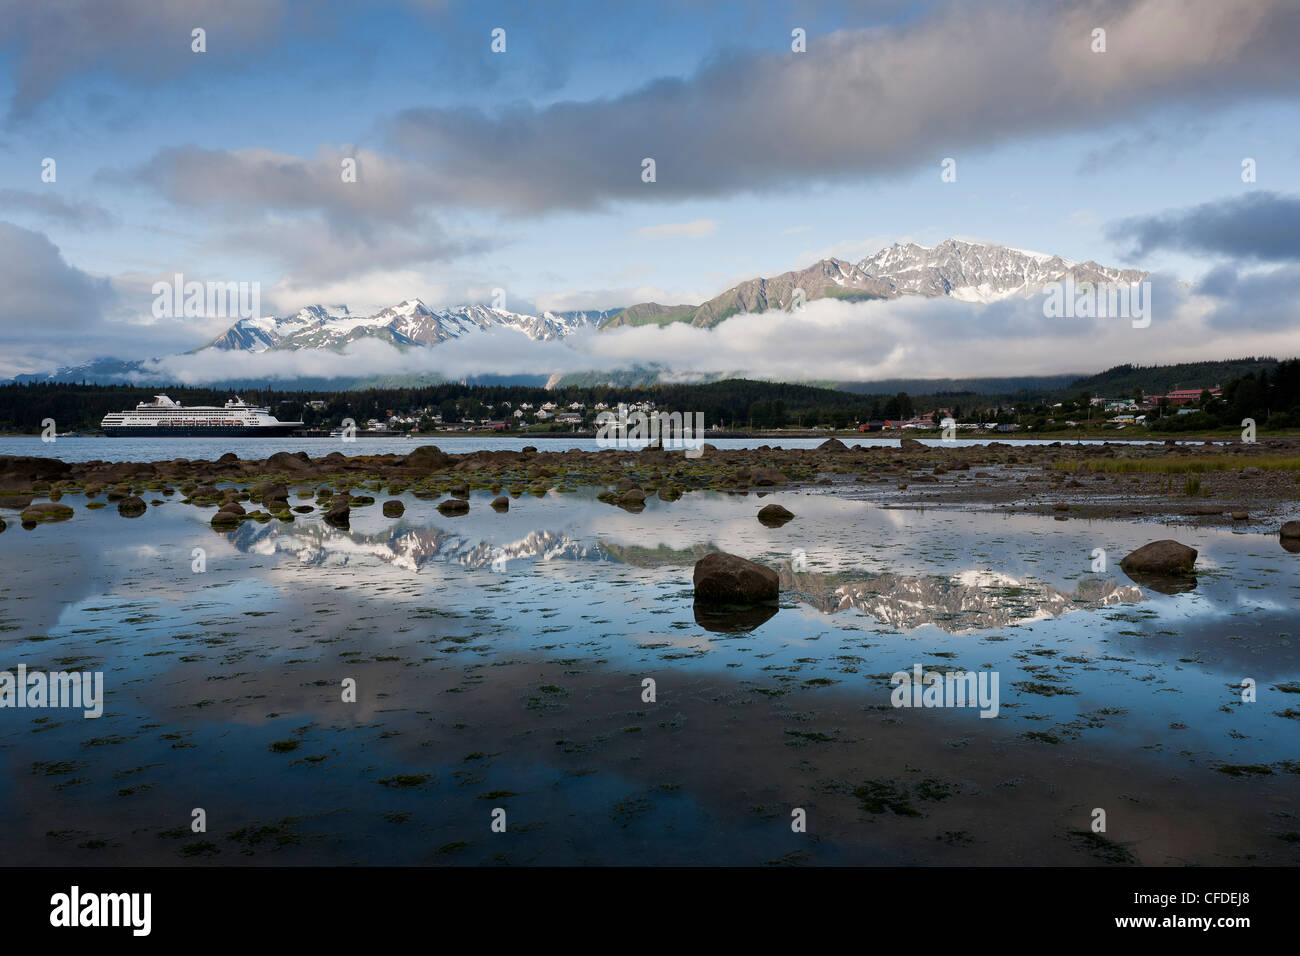 The cruise ship Veendam and the city of Haines as seen from Lutak Road, Haines, Alaska, United States of America - Stock Image